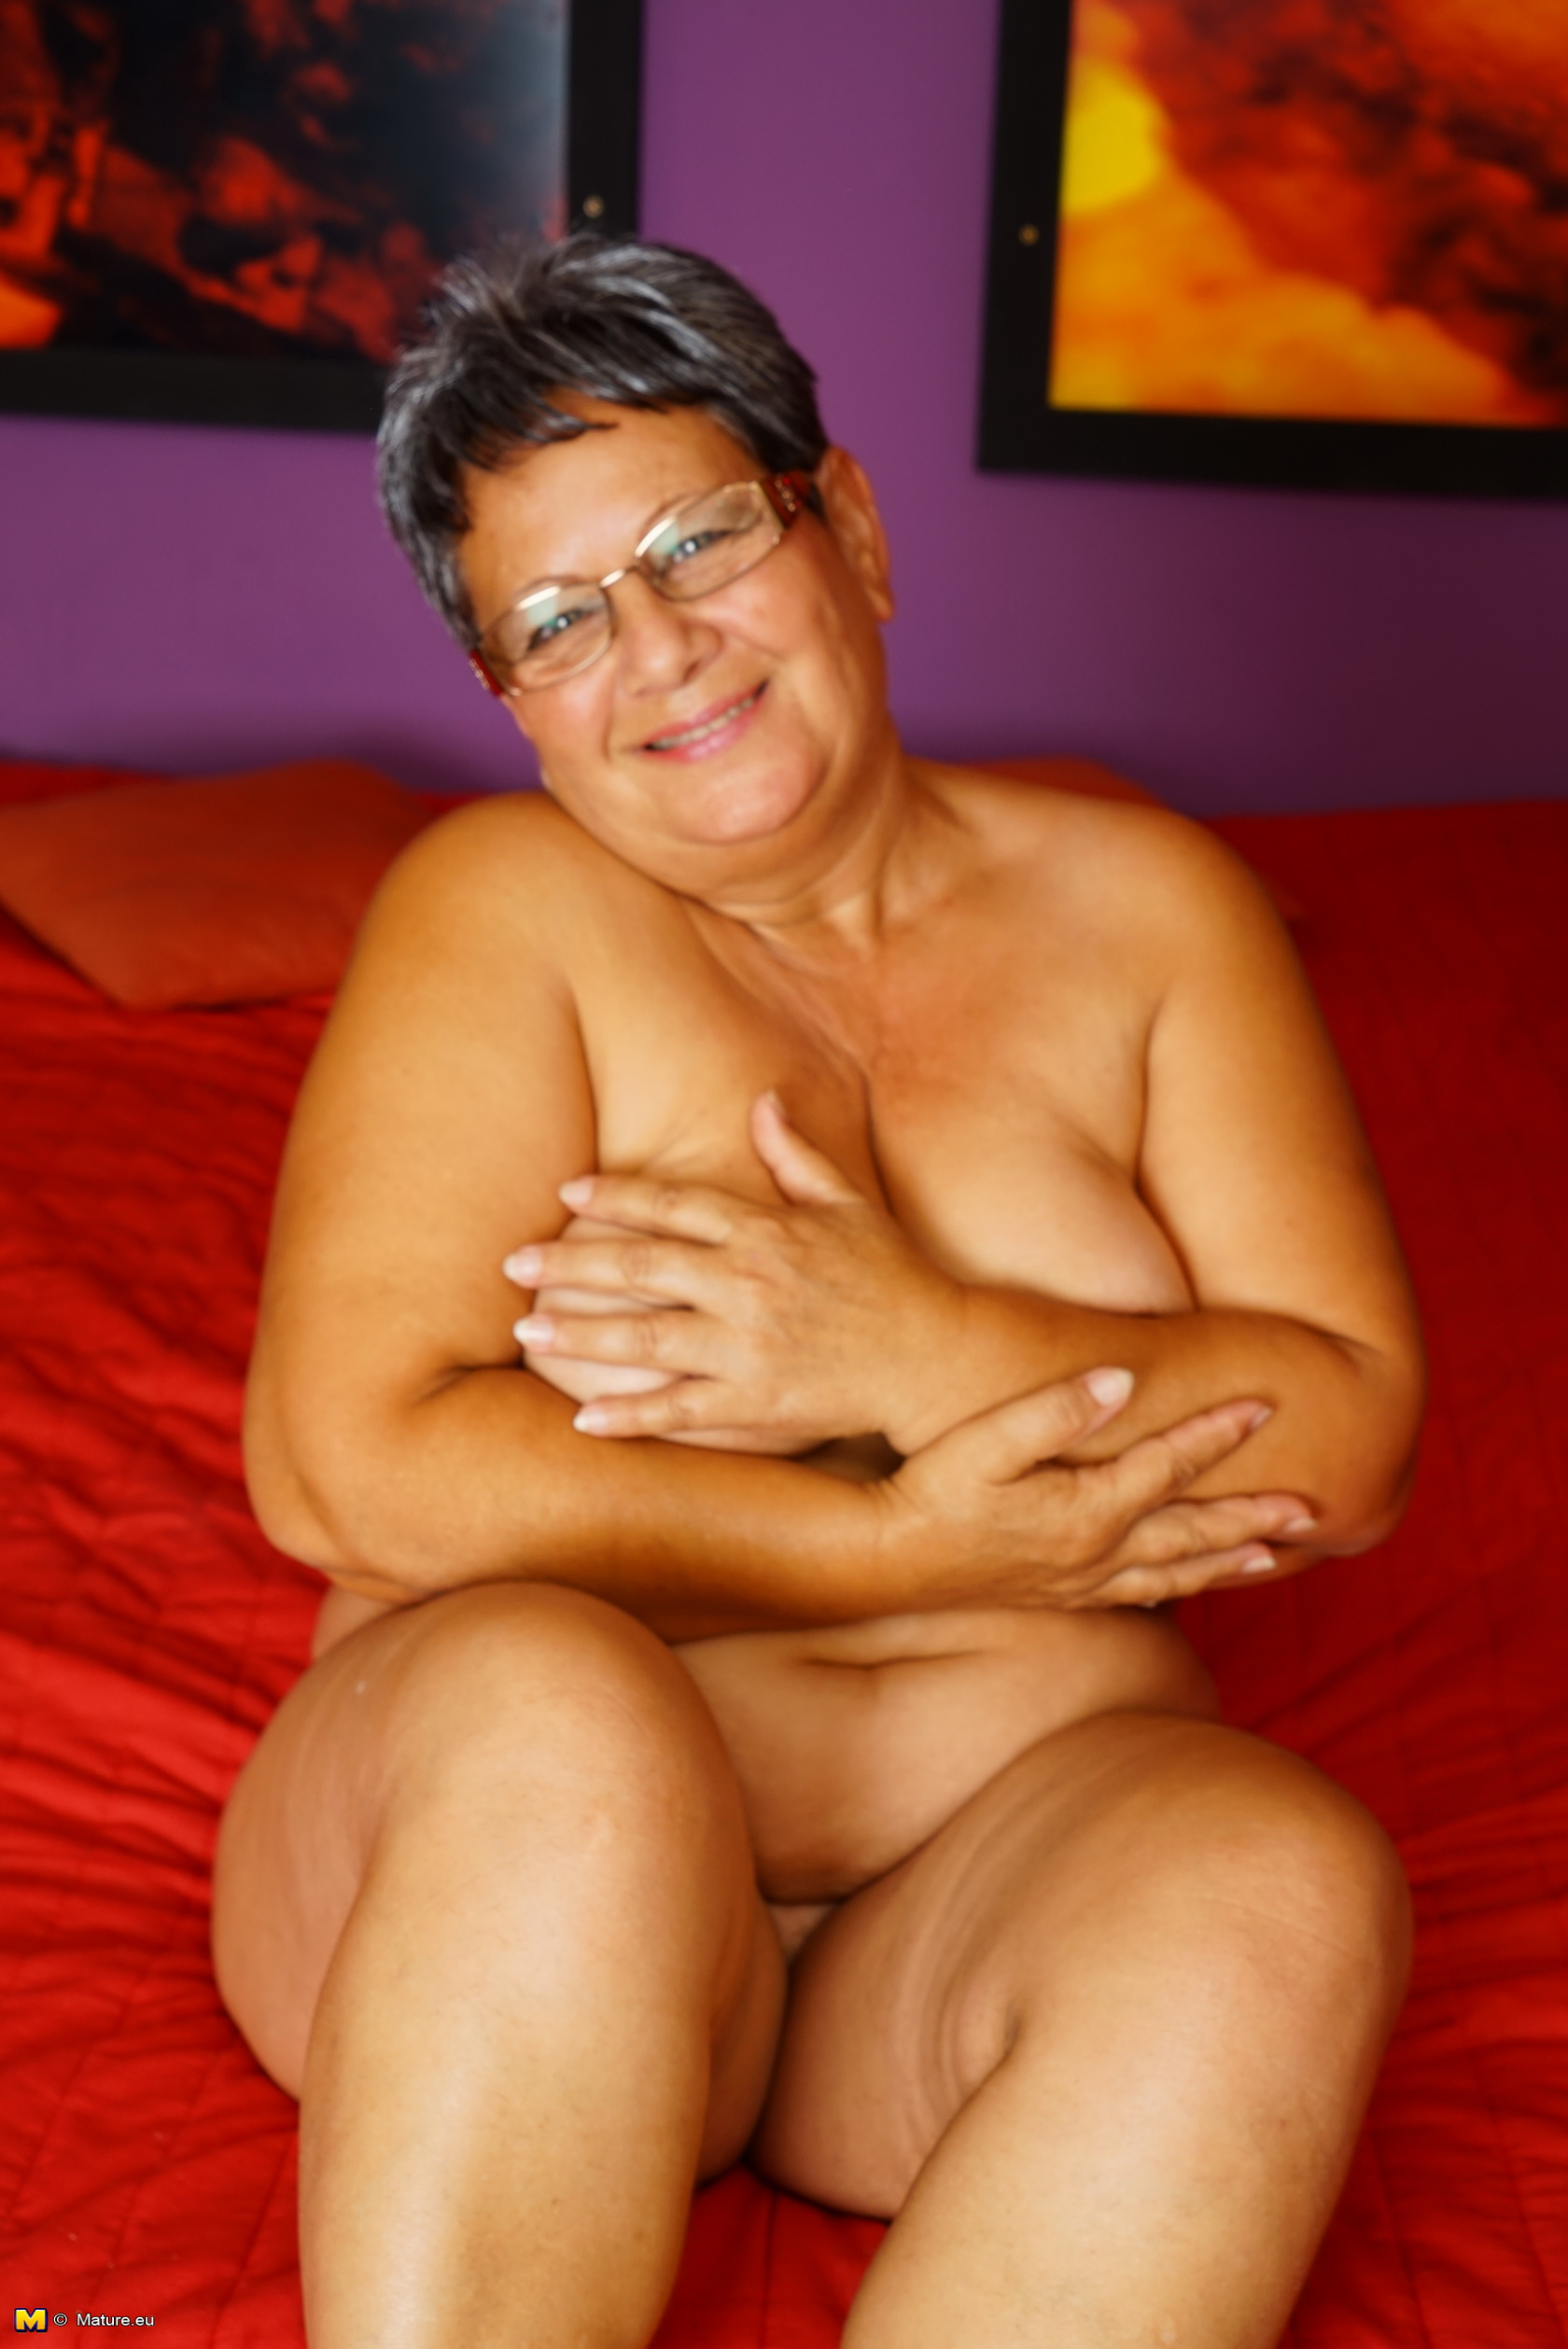 Nauchty plump mature woman frolicking with herself